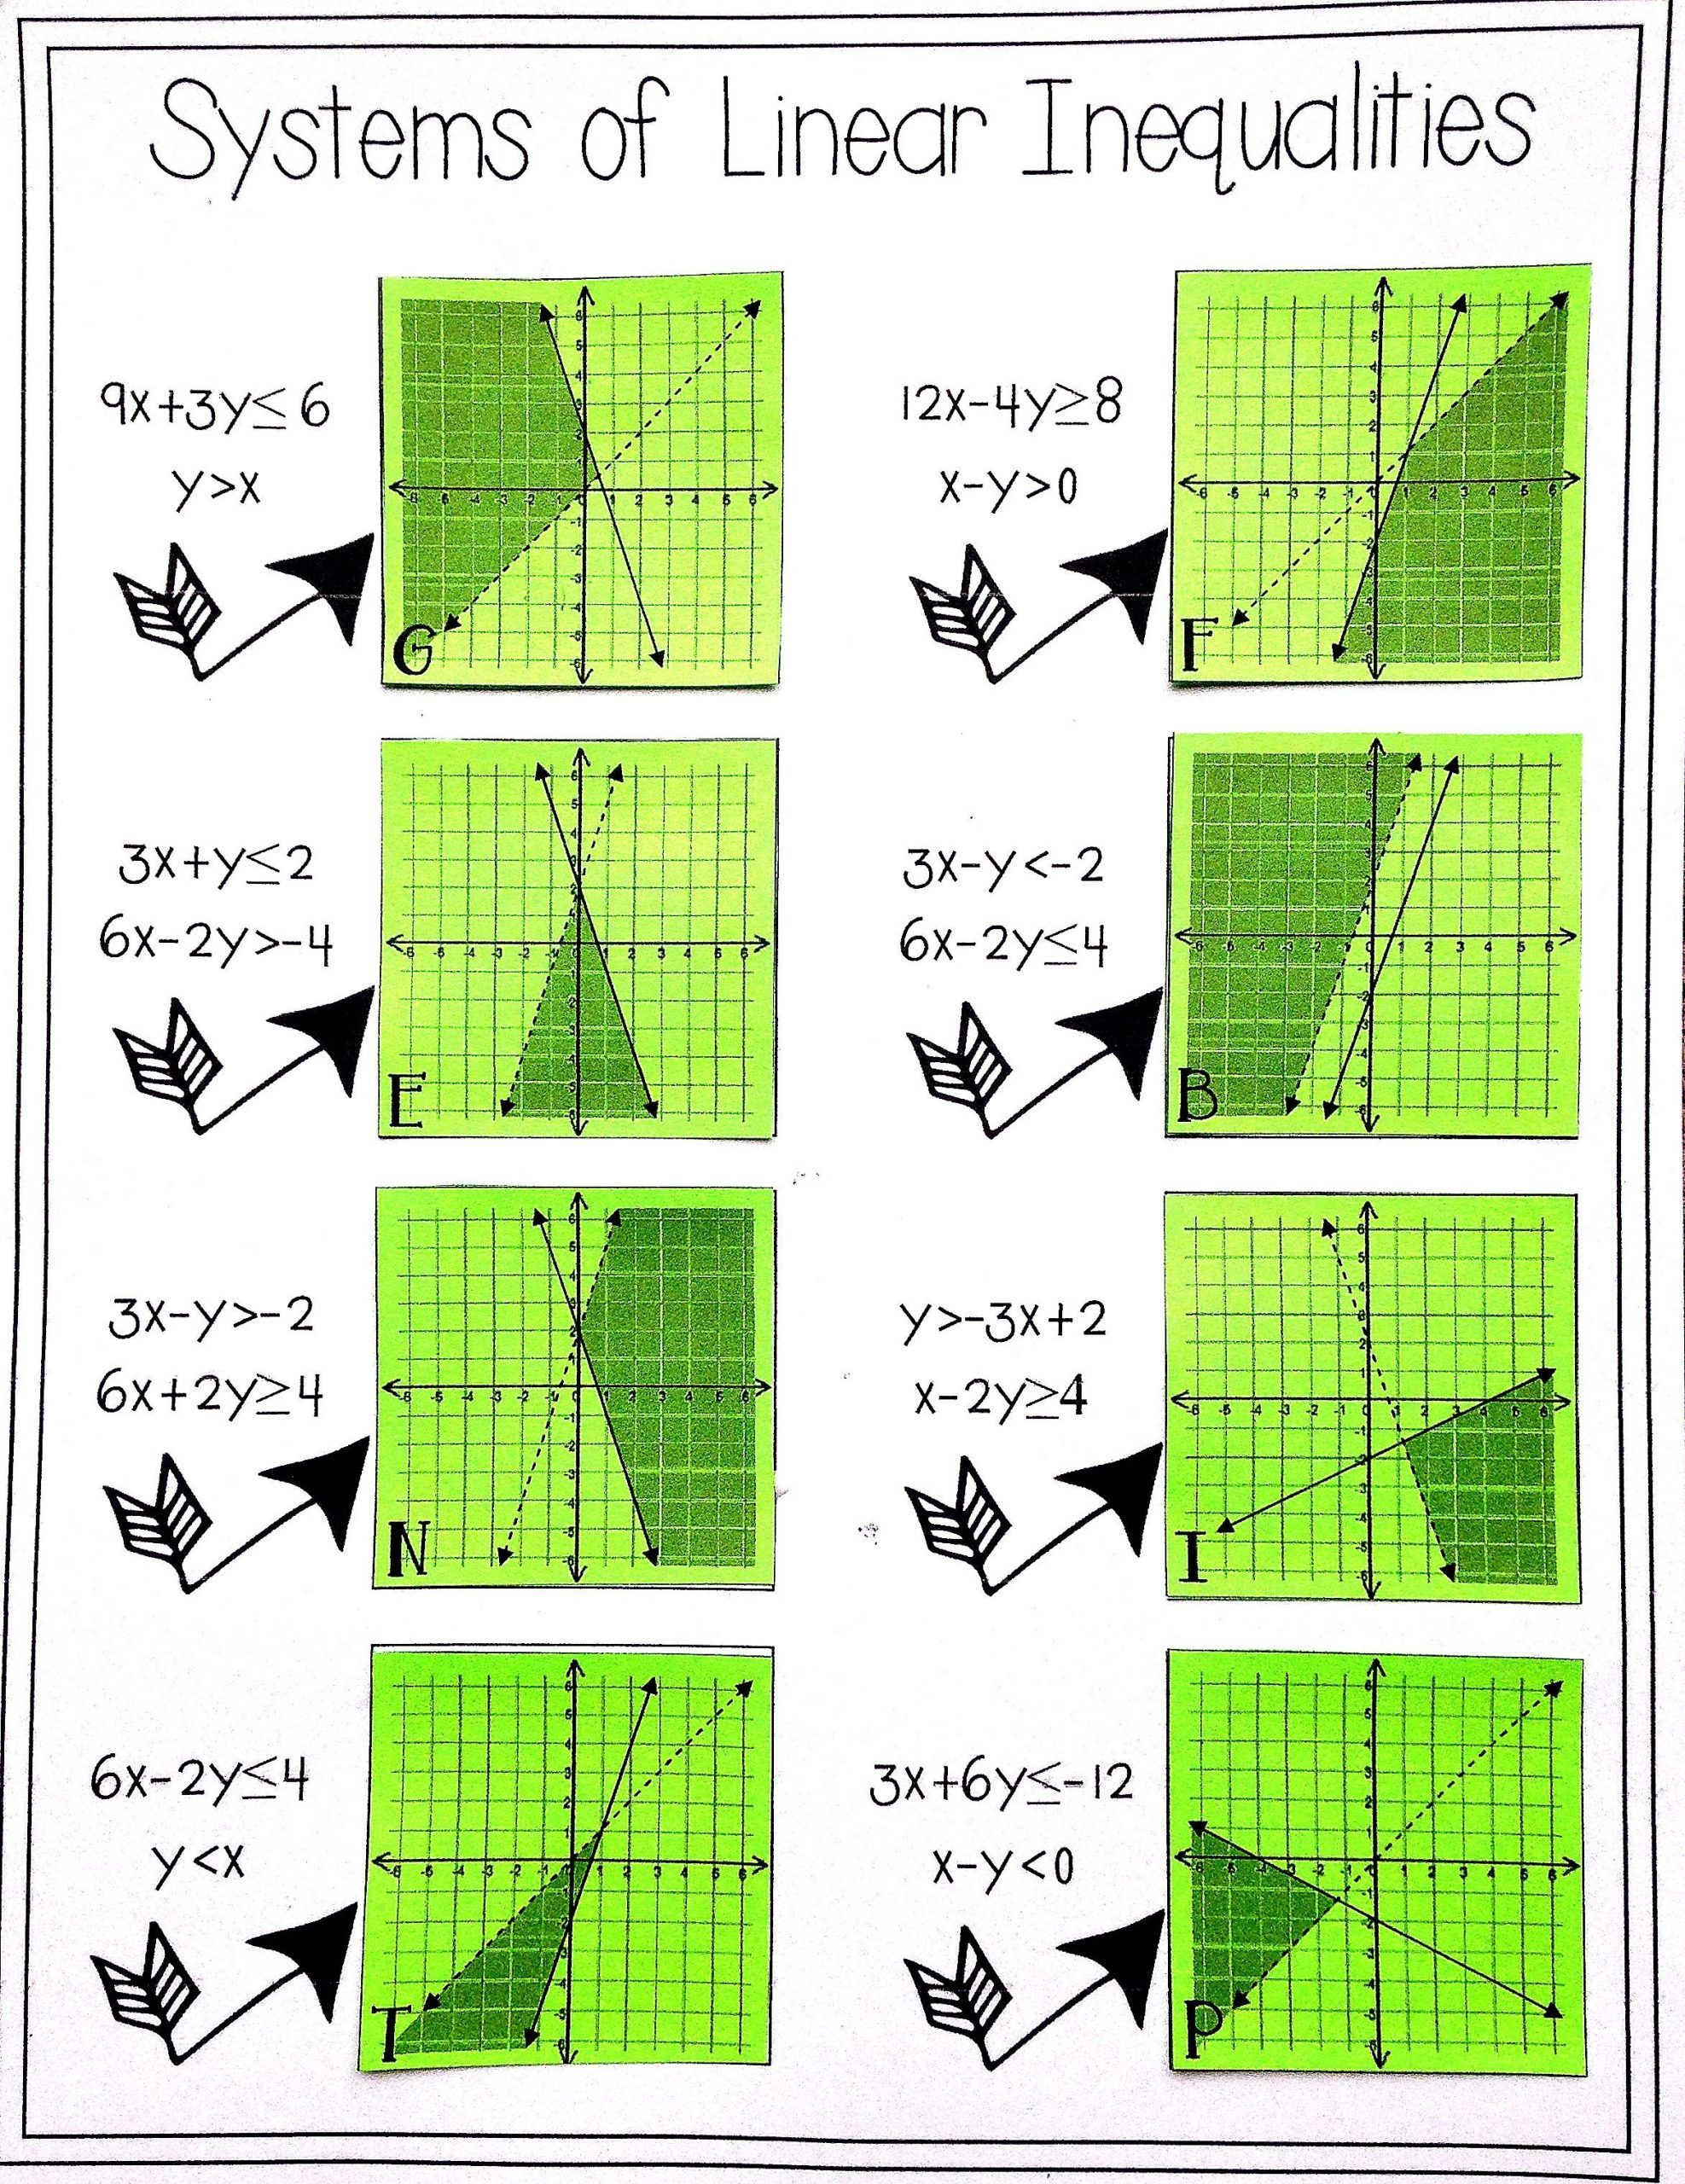 Systems Of Linear Inequalities Worksheet Systems Of Inequalities Matching Syste In 2020 Linear Inequalities Activities Linear Inequalities Graphing Linear Inequalities